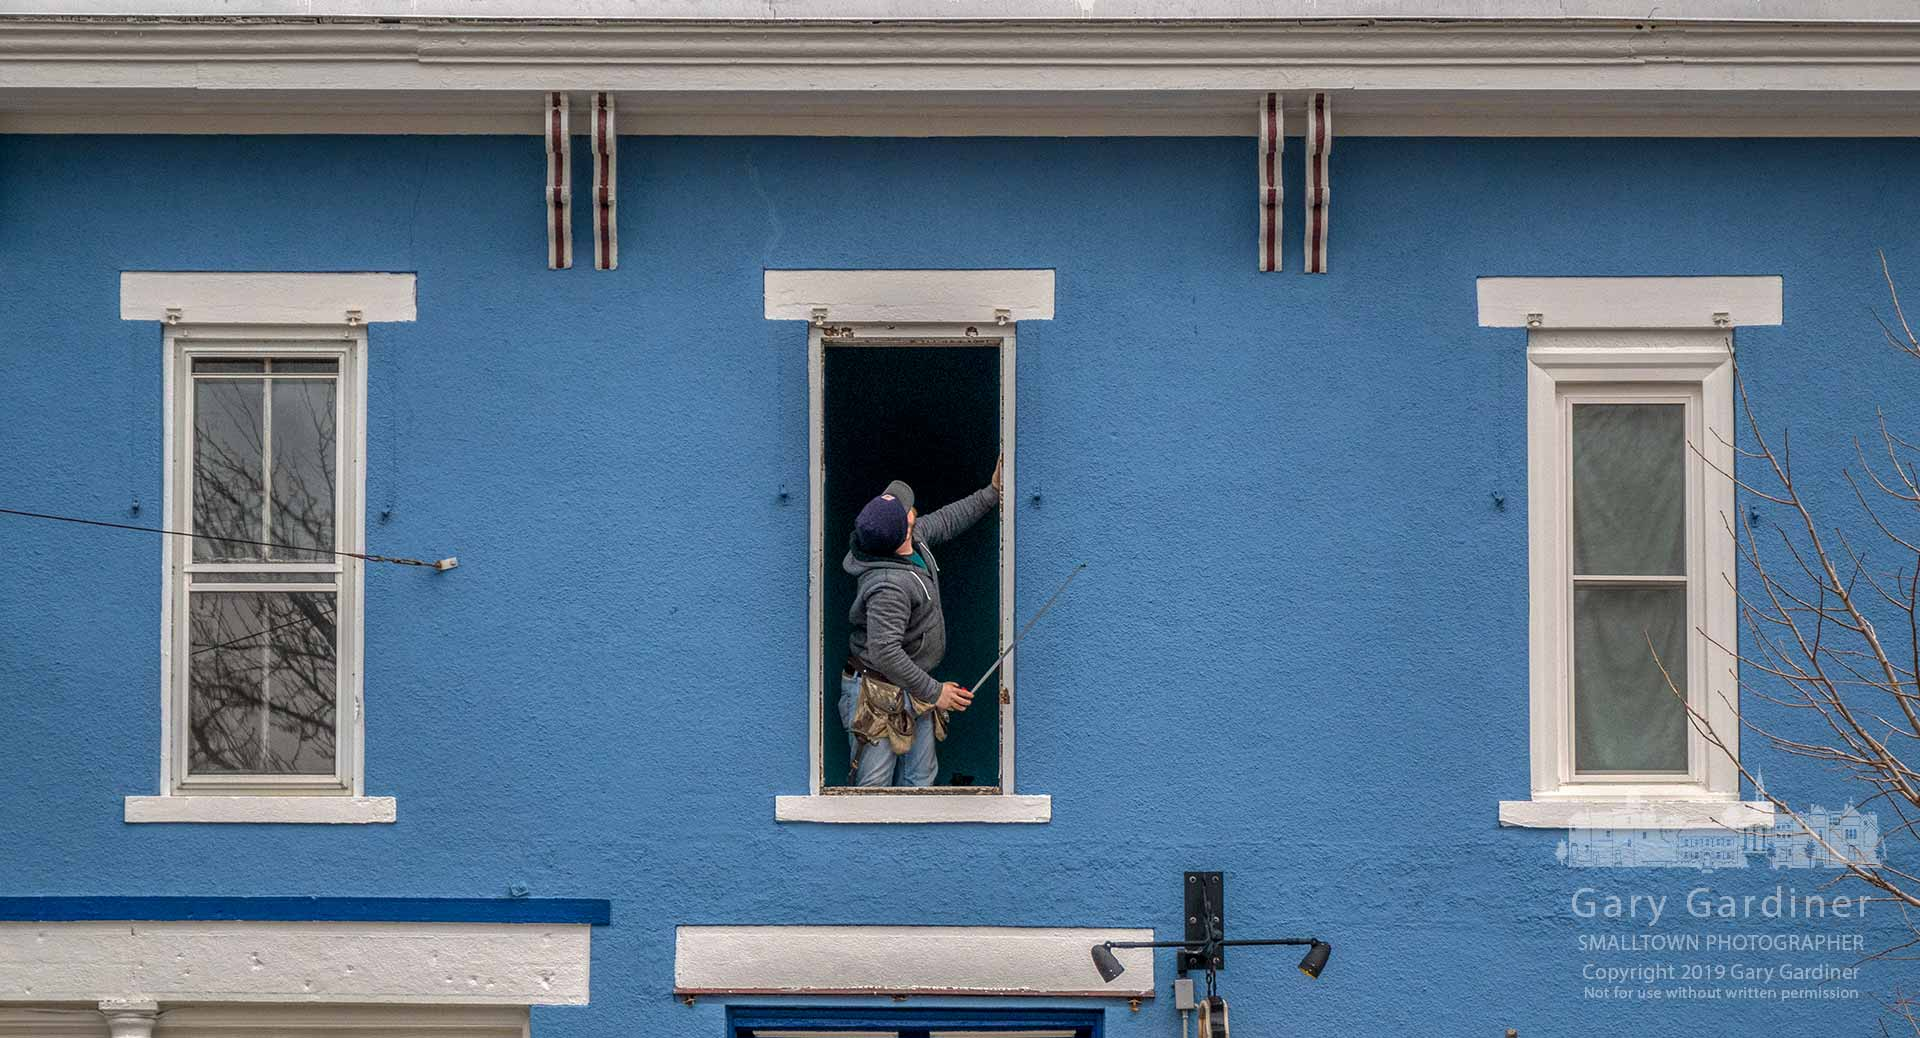 An installer checks dimension on a second-floor apartment window before replacing it with a double-pane window duringthe renovation of parts of the building just south of College Ave. on State Street in Uptown Westerville. My Final Photo for Feb. 15, 2019.